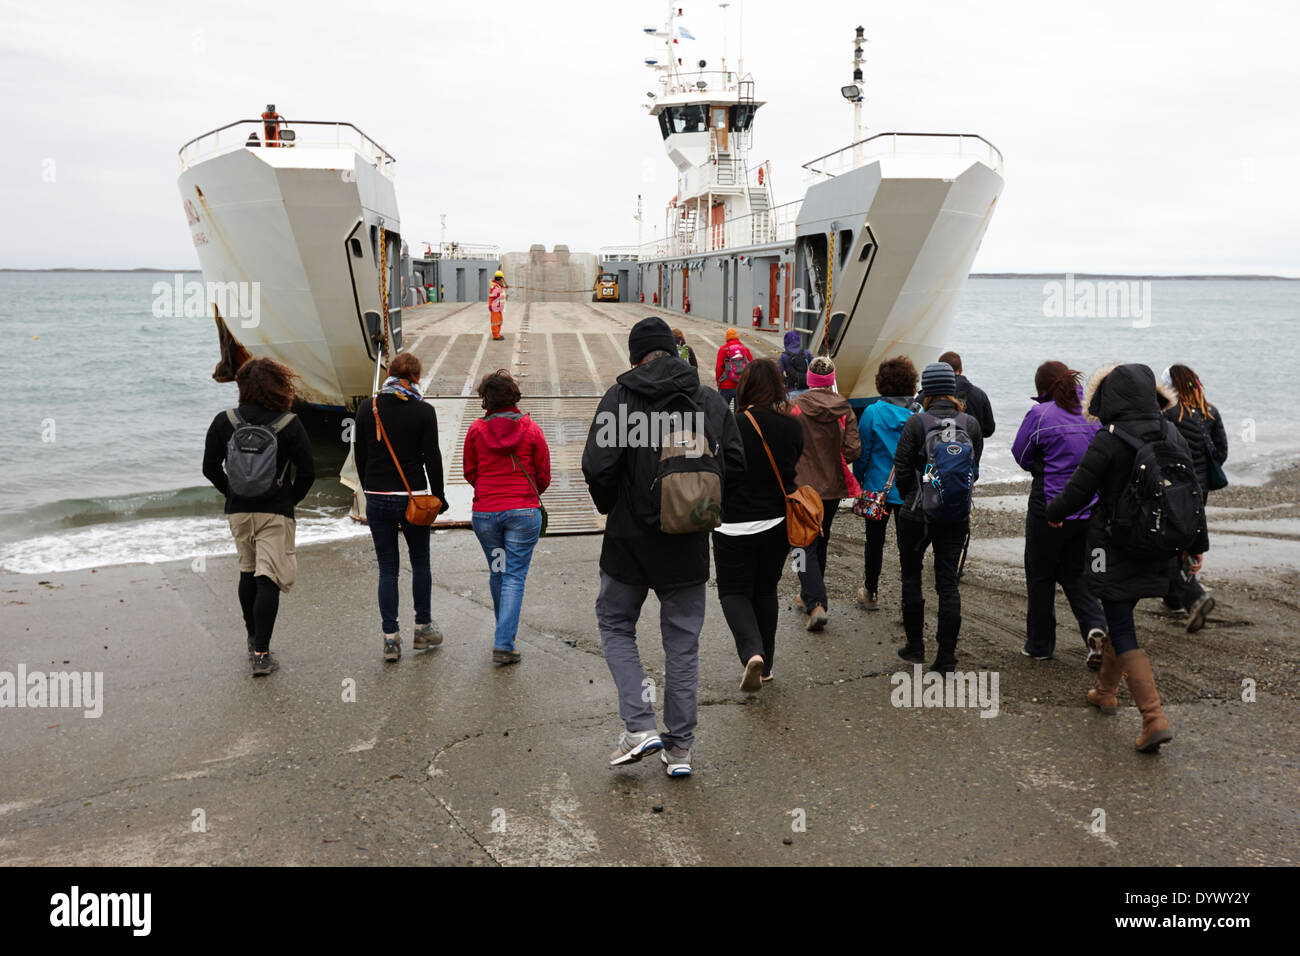 passengers boarding fueguino ferry Punta Delgada and the primera angostura sound in the strait of magellan Chile - Stock Image